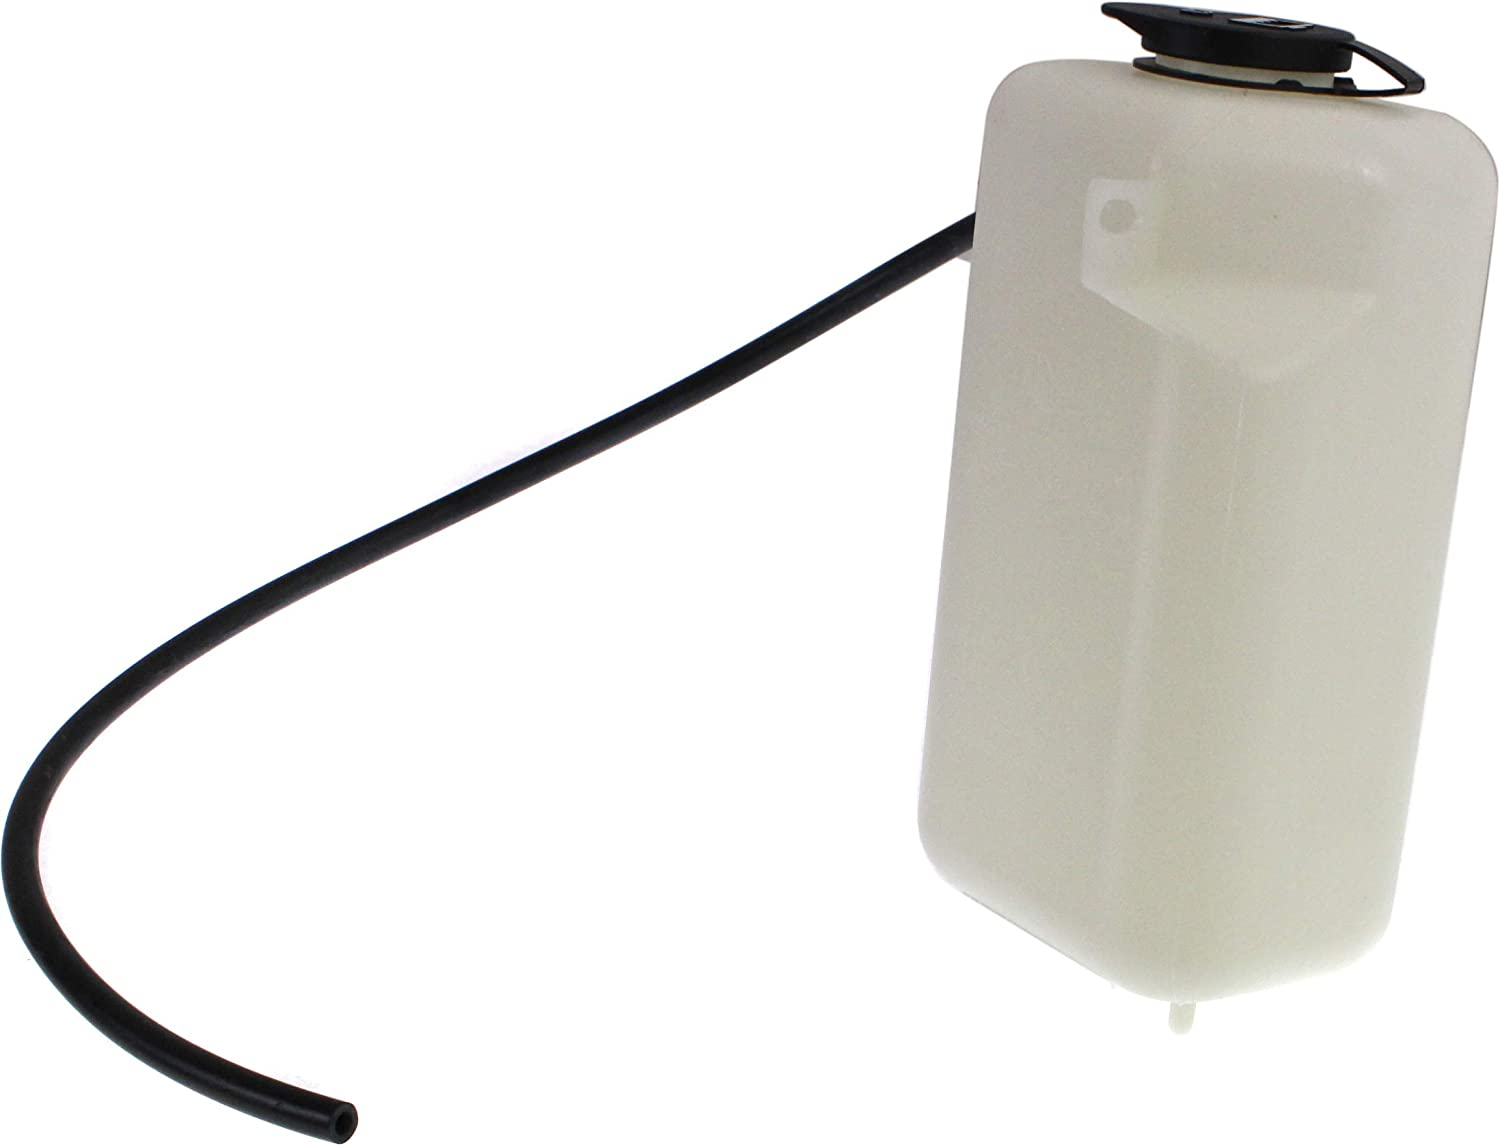 Coolant Reservoir Compatible with MERCURY VILLAGER 1999-2002 with Cap and Hose